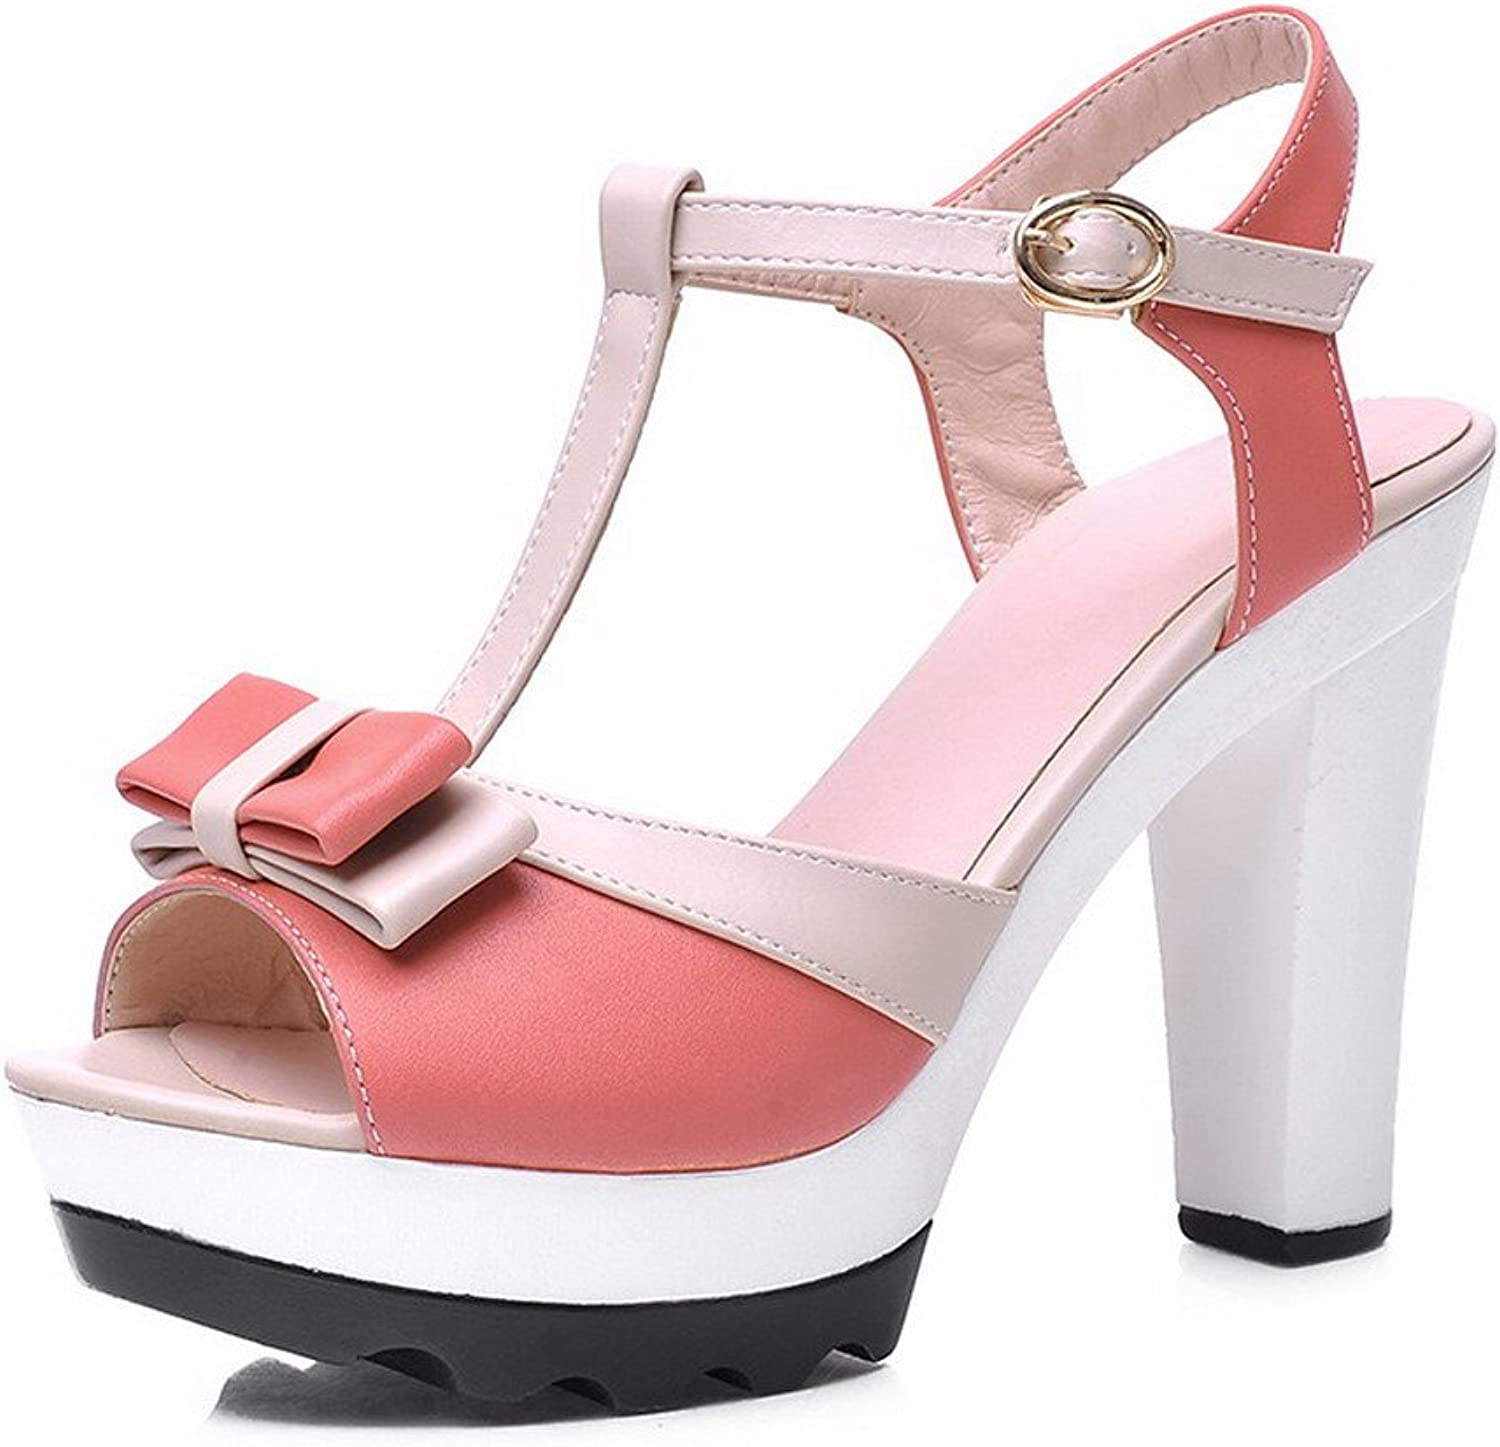 AmoonyFashion Women's Open Toe High Heel PU Soft Material Solid Sandals with Bows, Pink, 7.5 B(M) US